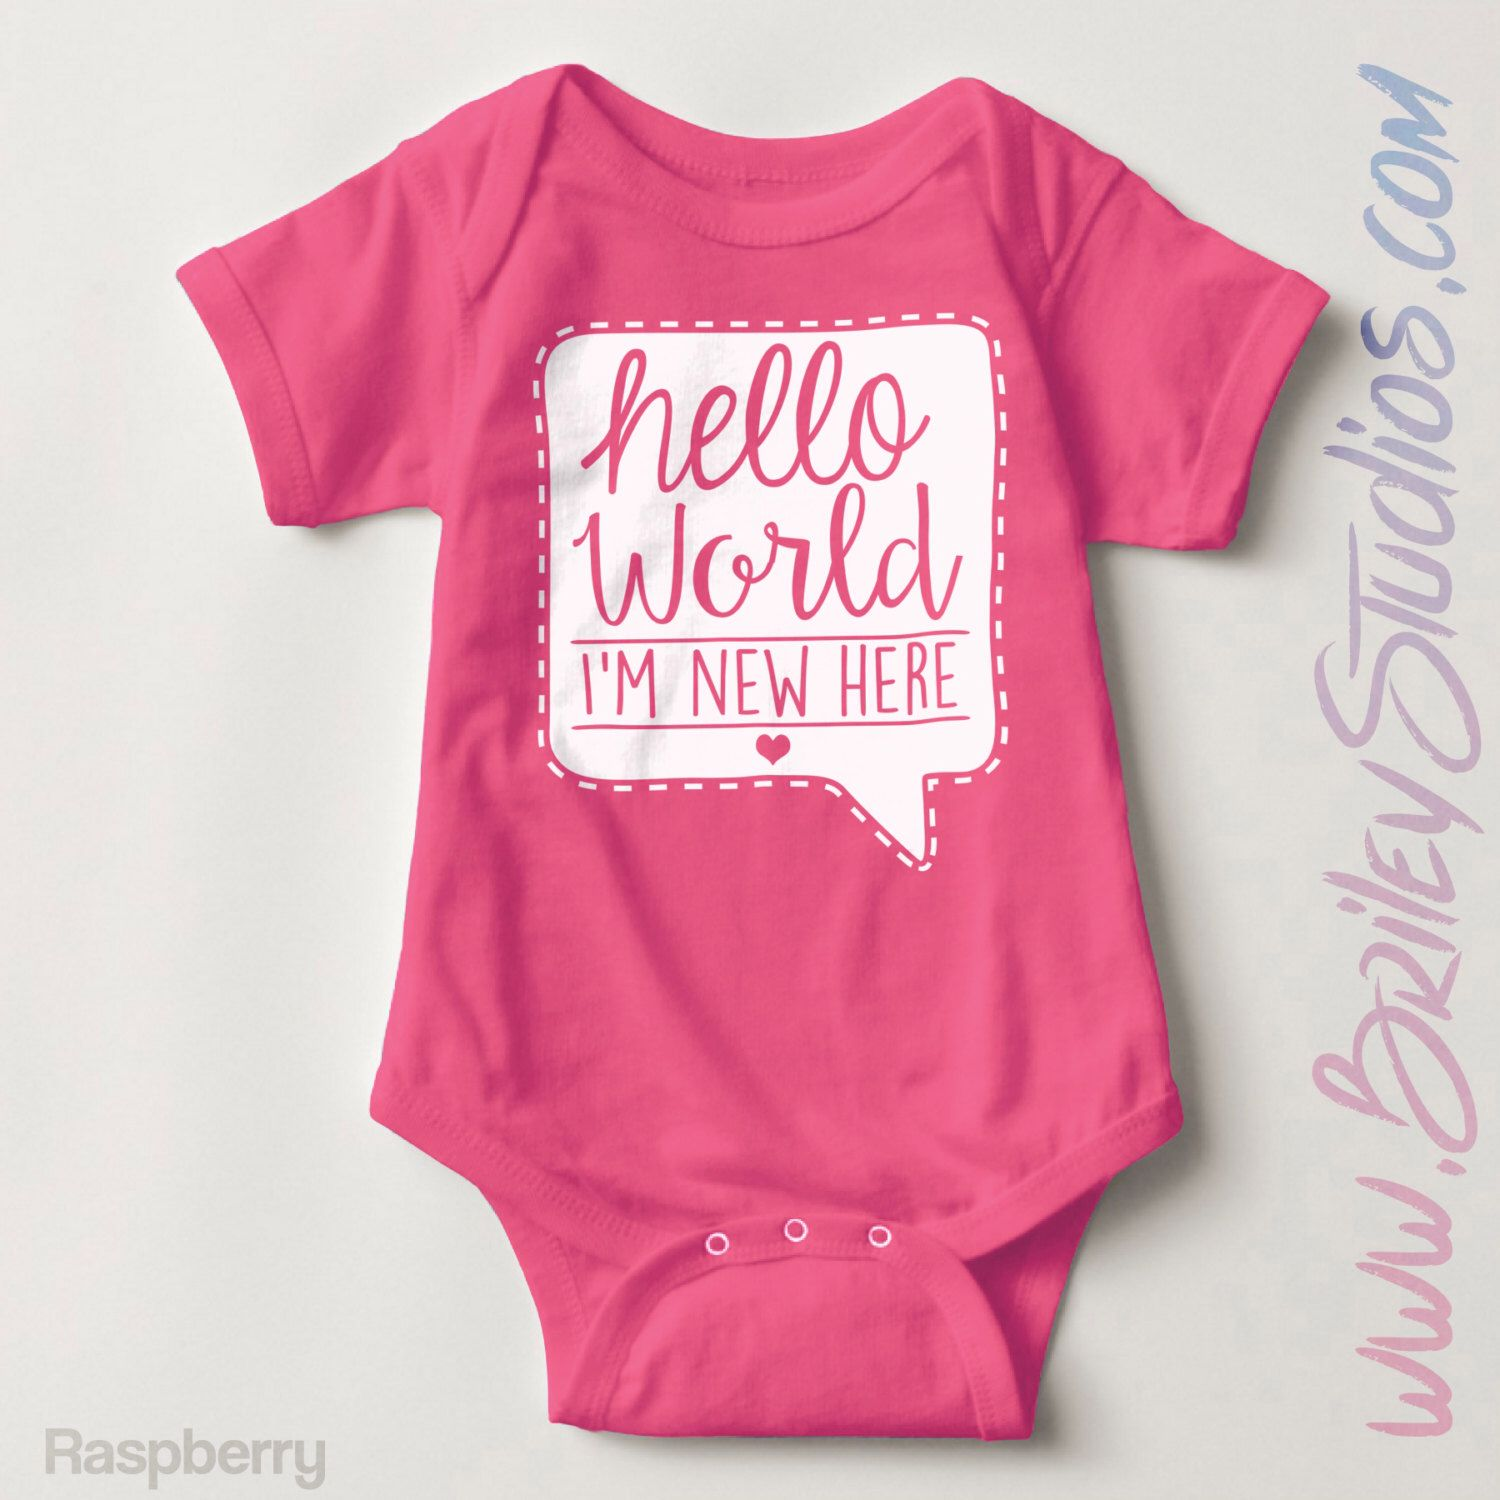 05ee40ee7 Hello World I m New Here Newborn Baby Outfit